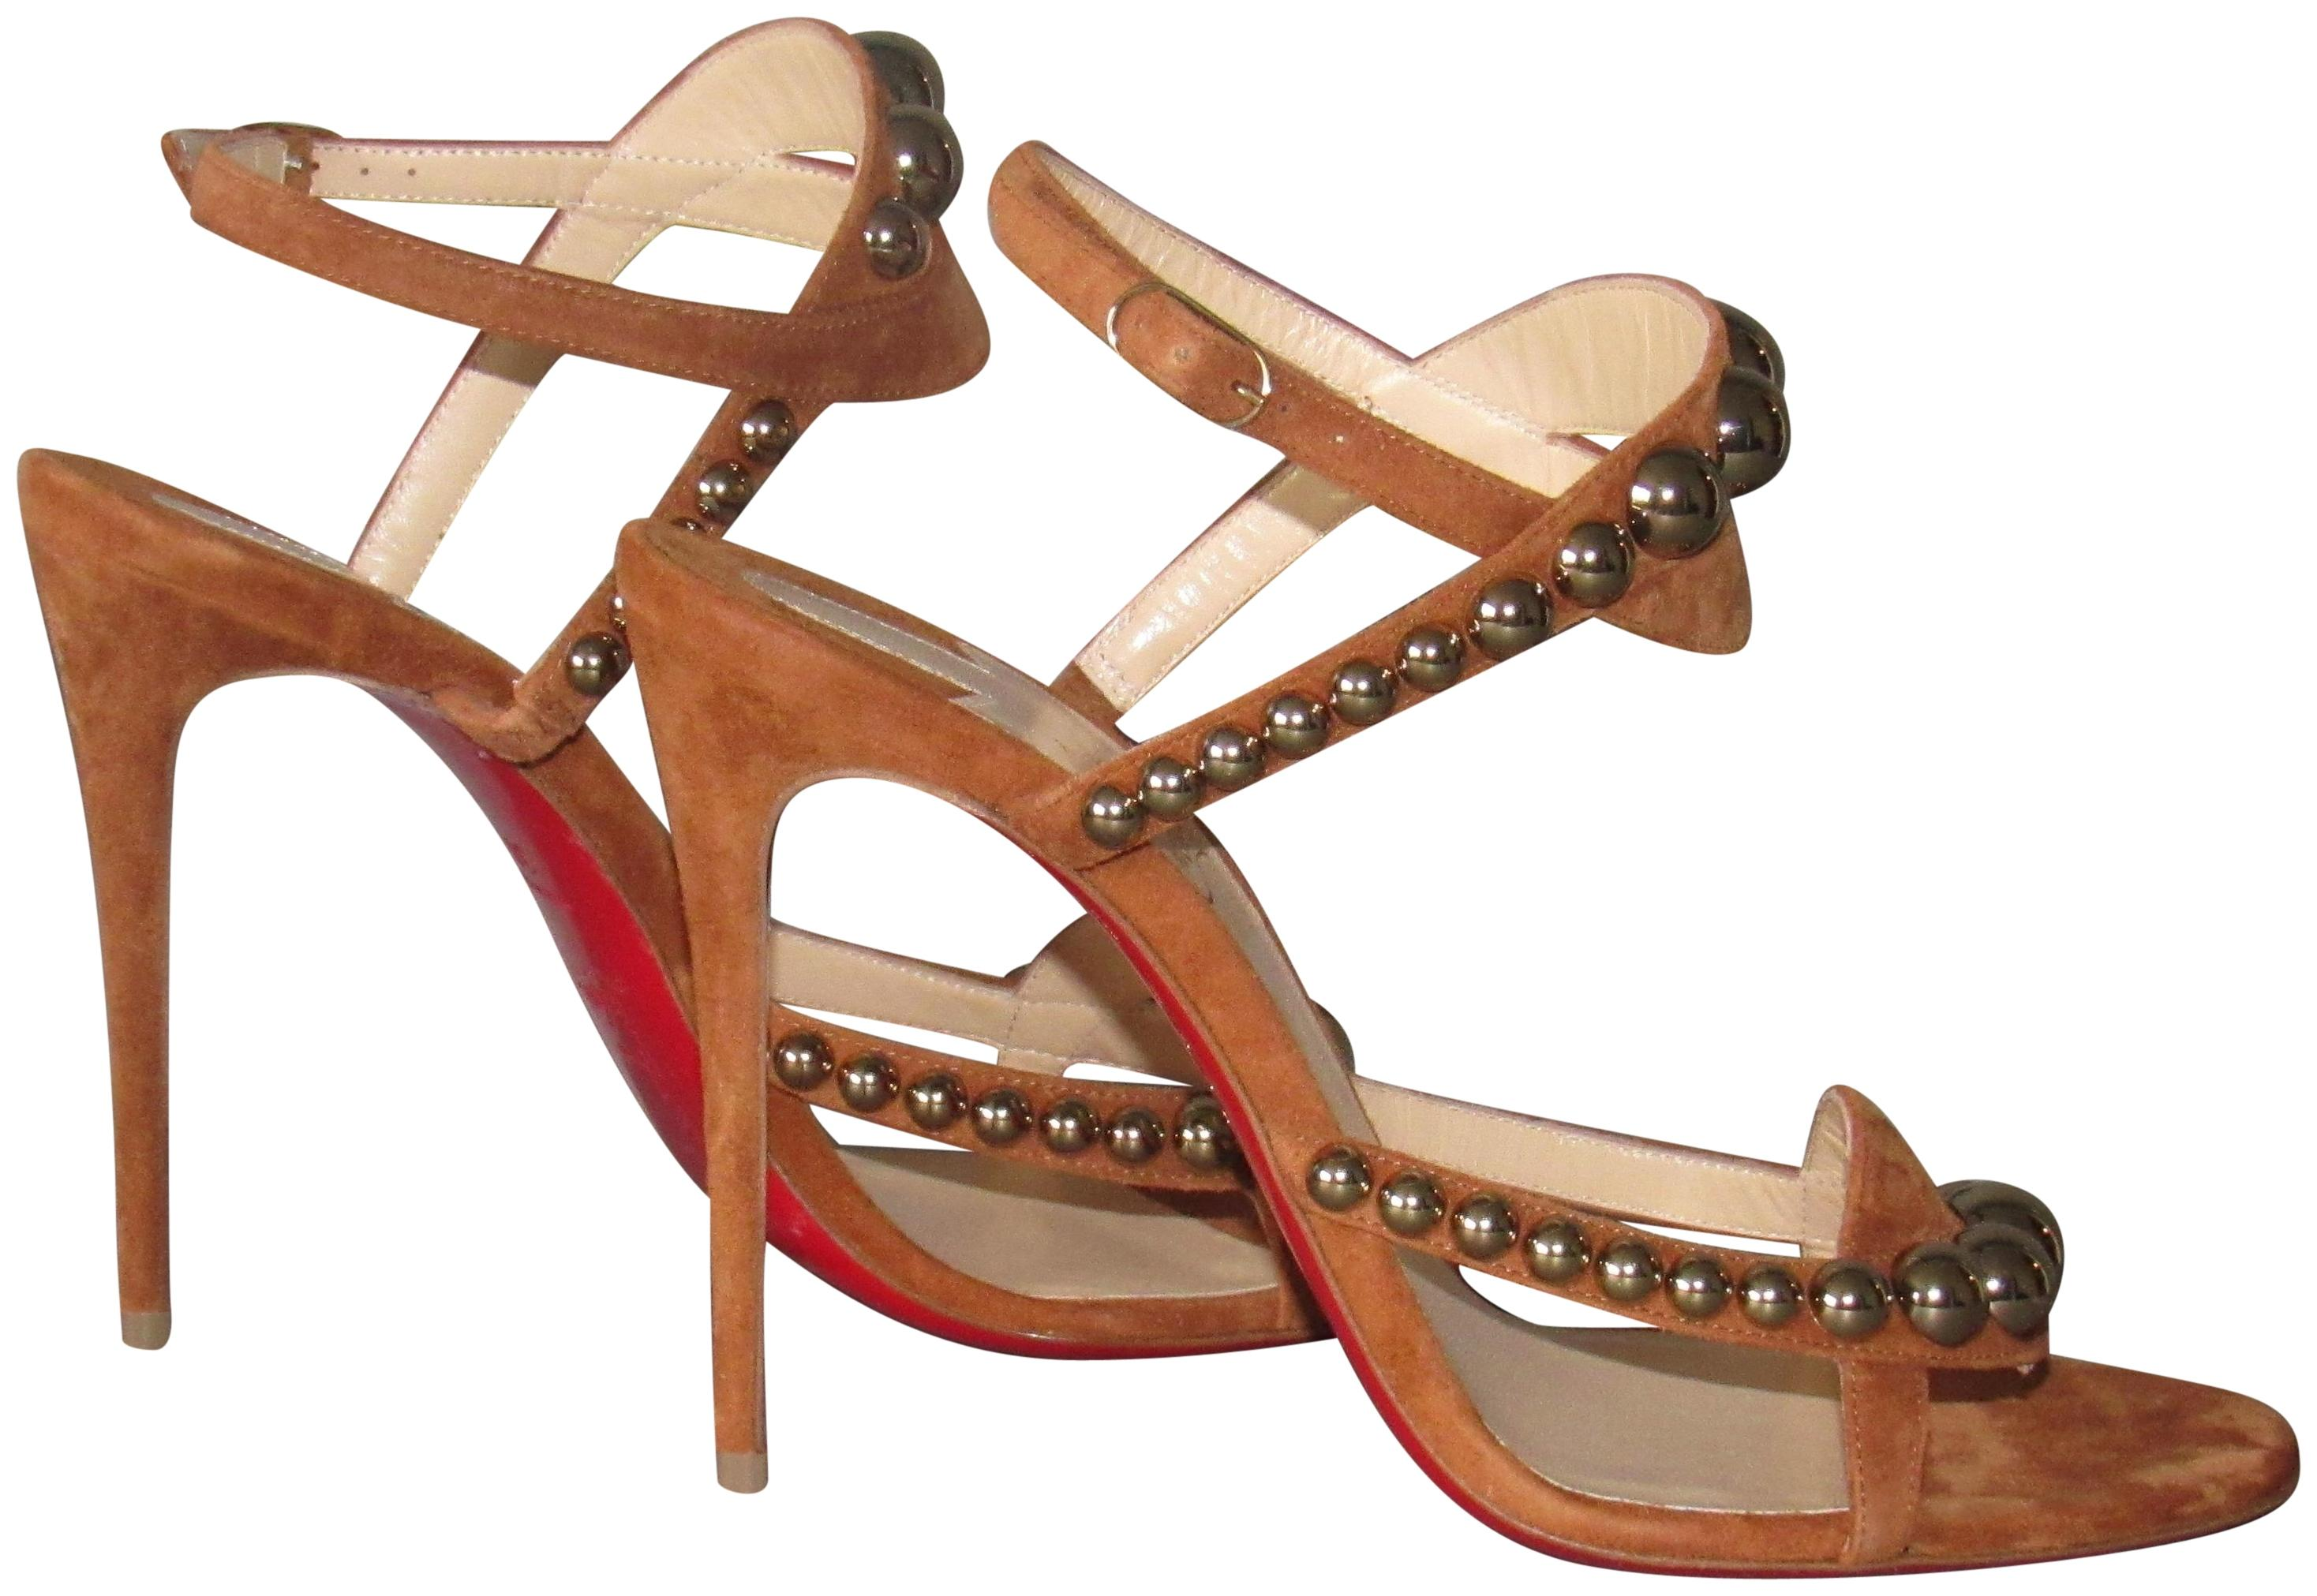 lowest price d89d8 643f0 Christian Louboutin Carmel Brown/Cannelle New Galeria 100 ...